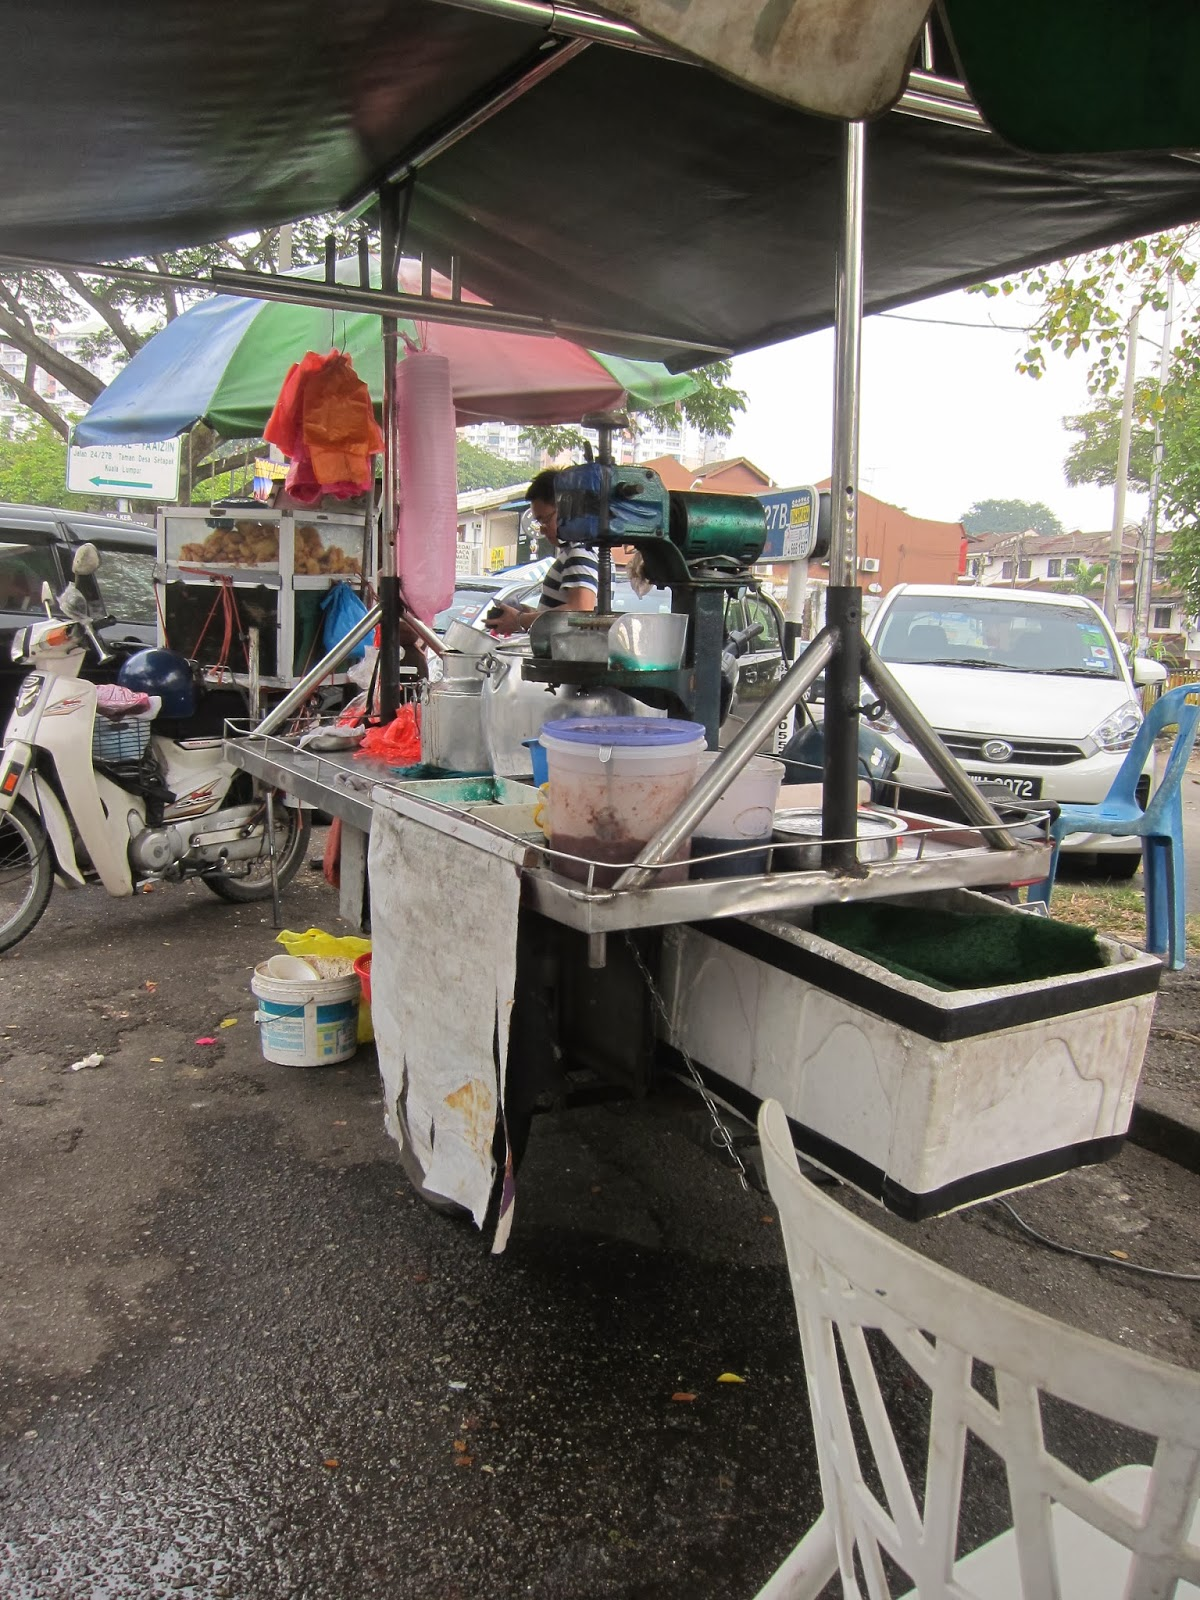 The Cendol Stall at Wangsa Maju